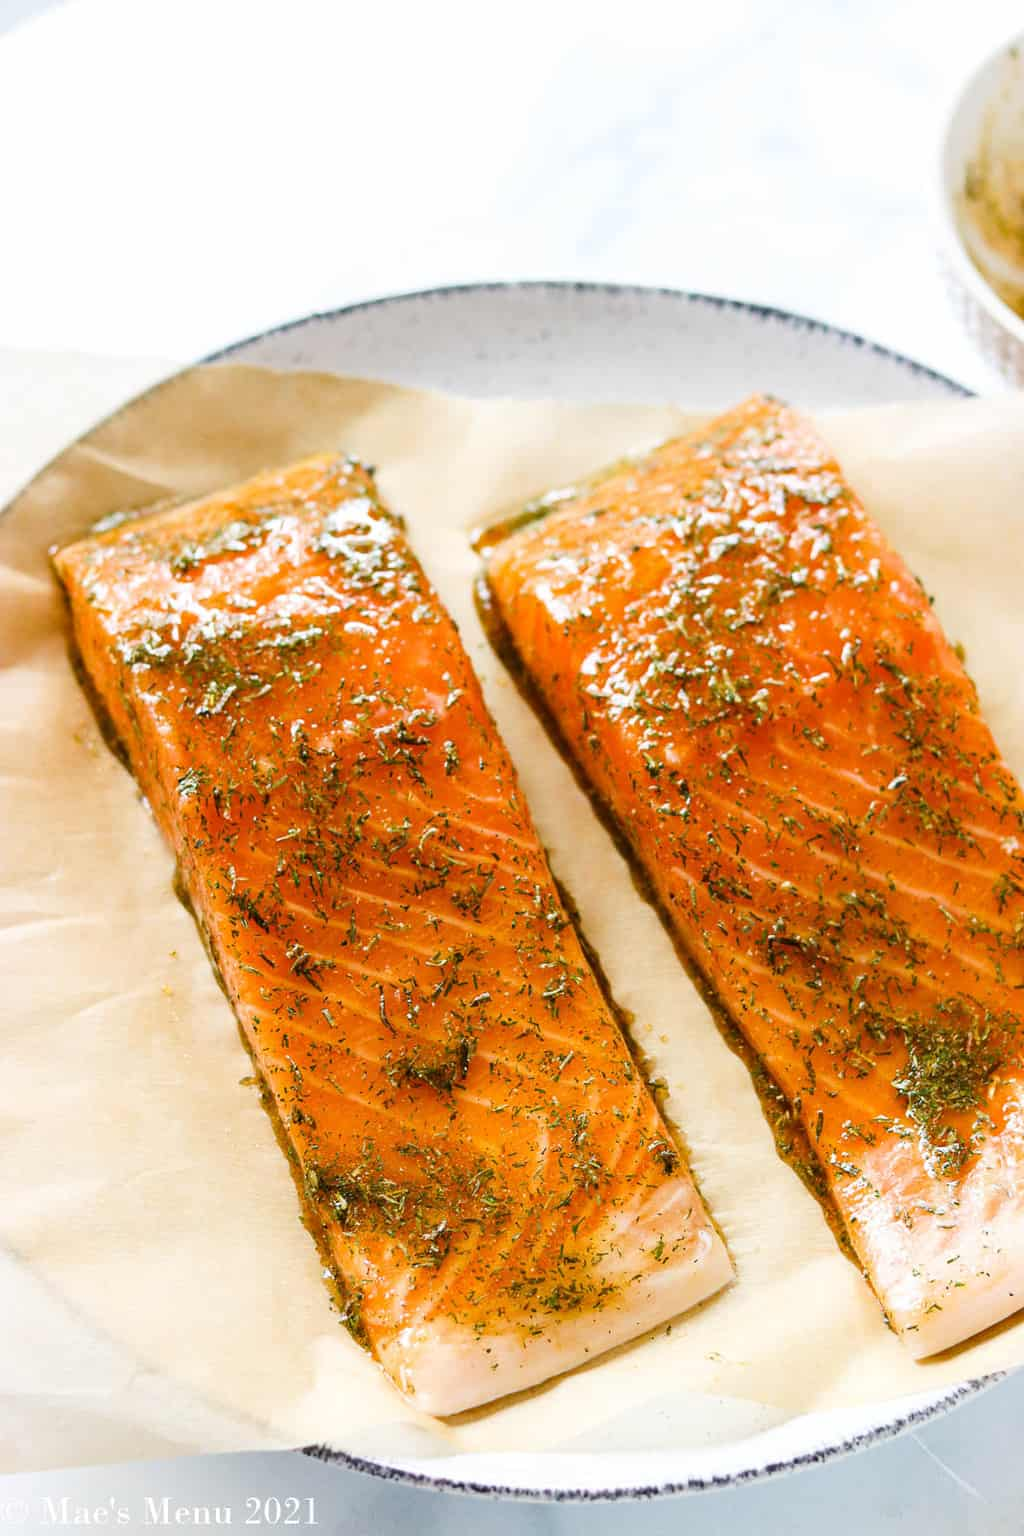 Two large pieces of salmon brushed with the glaze on a plate